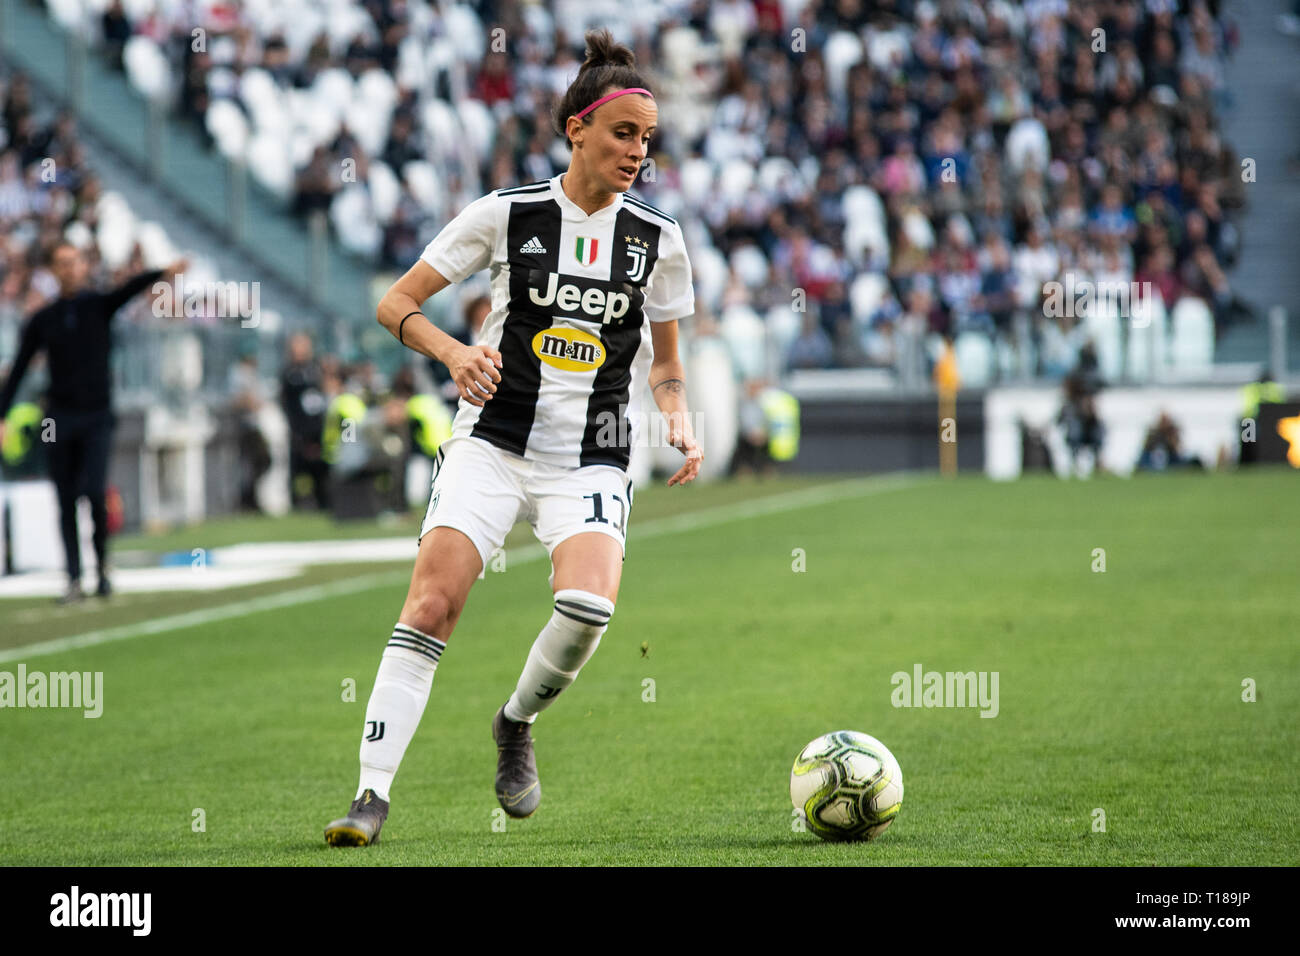 Turin, Italy. 24th Mar, 2019. Arianna Caruso of Juventus Women during Juventus Women vs Fiorentina Women. Juventus Women won 1-0 at Allianz Stadium, in, Italy., . Credit: Alberto Gandolfo/Alamy Live News Stock Photo